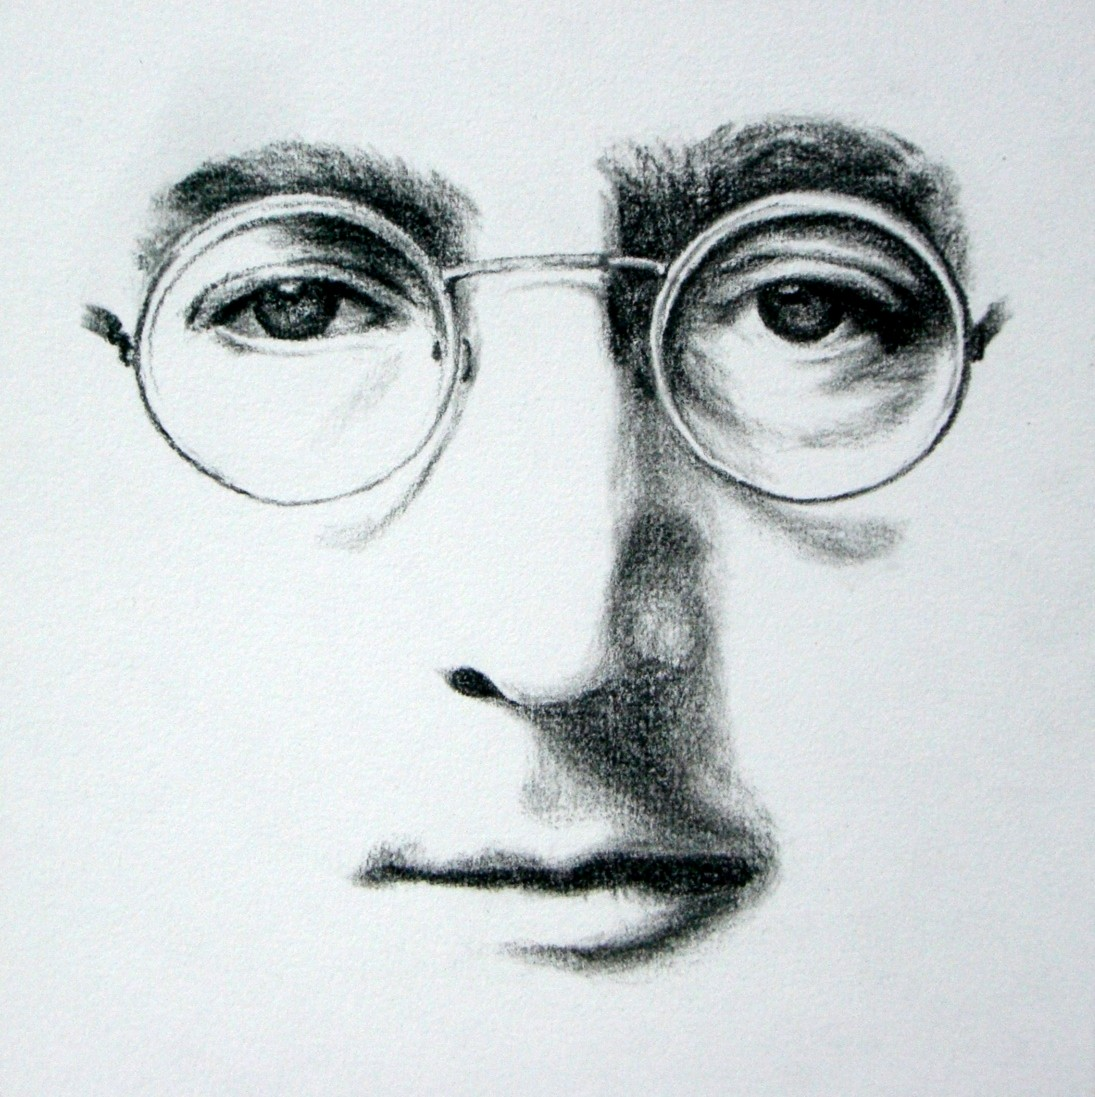 https://i0.wp.com/www.mcrfb.com/wp-content/uploads/2012/12/John-Lennon-in-sketch-by-Julianaa27.jpg